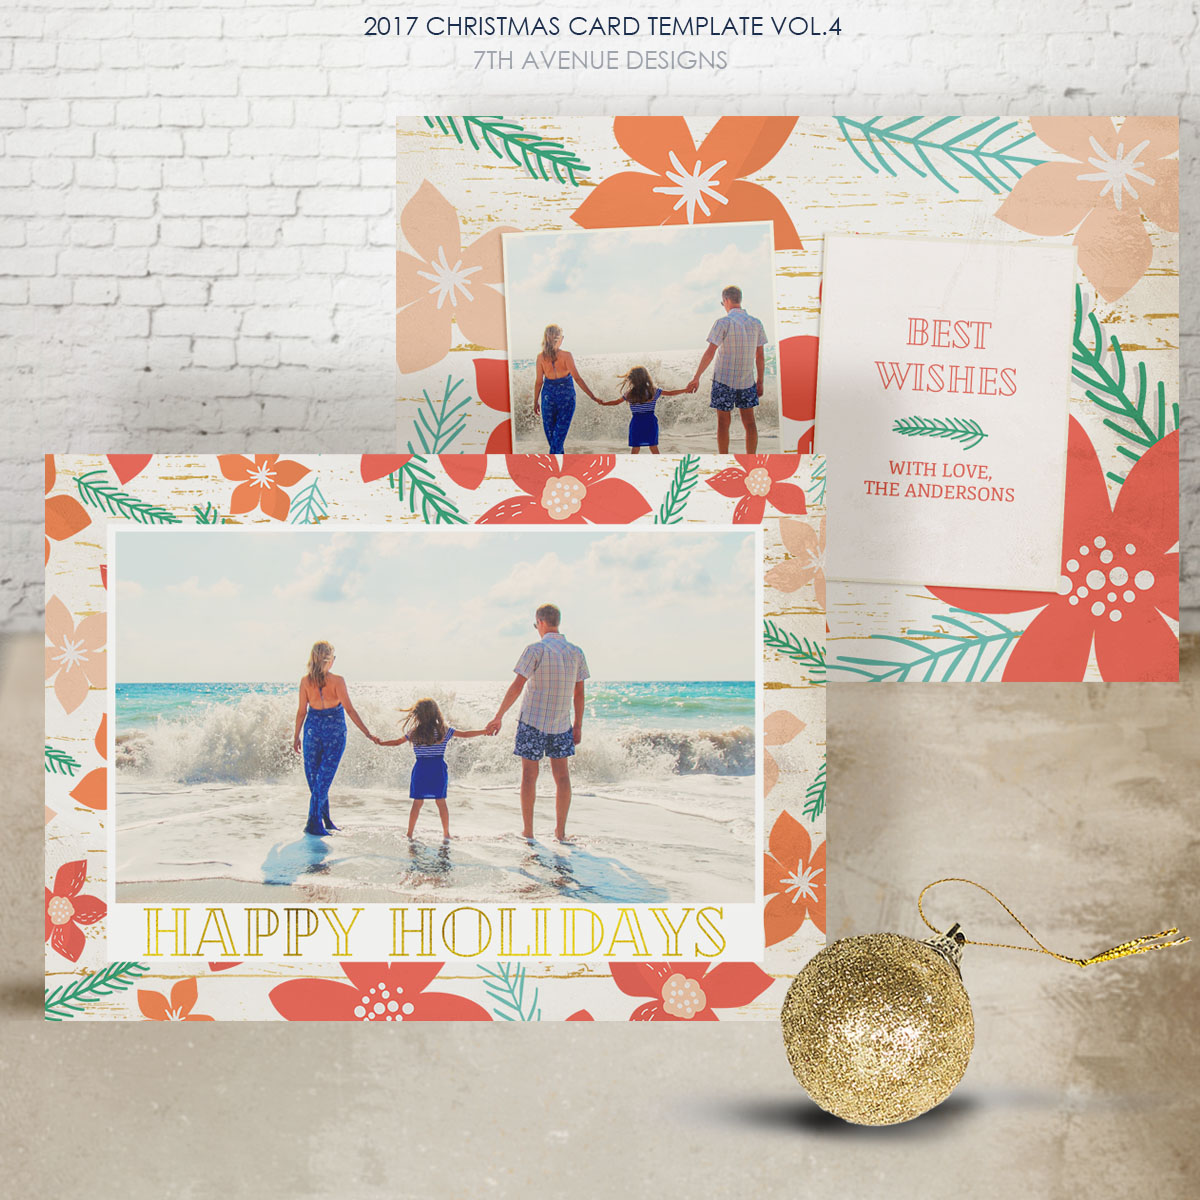 2017 Christmas Card Templates vol.4